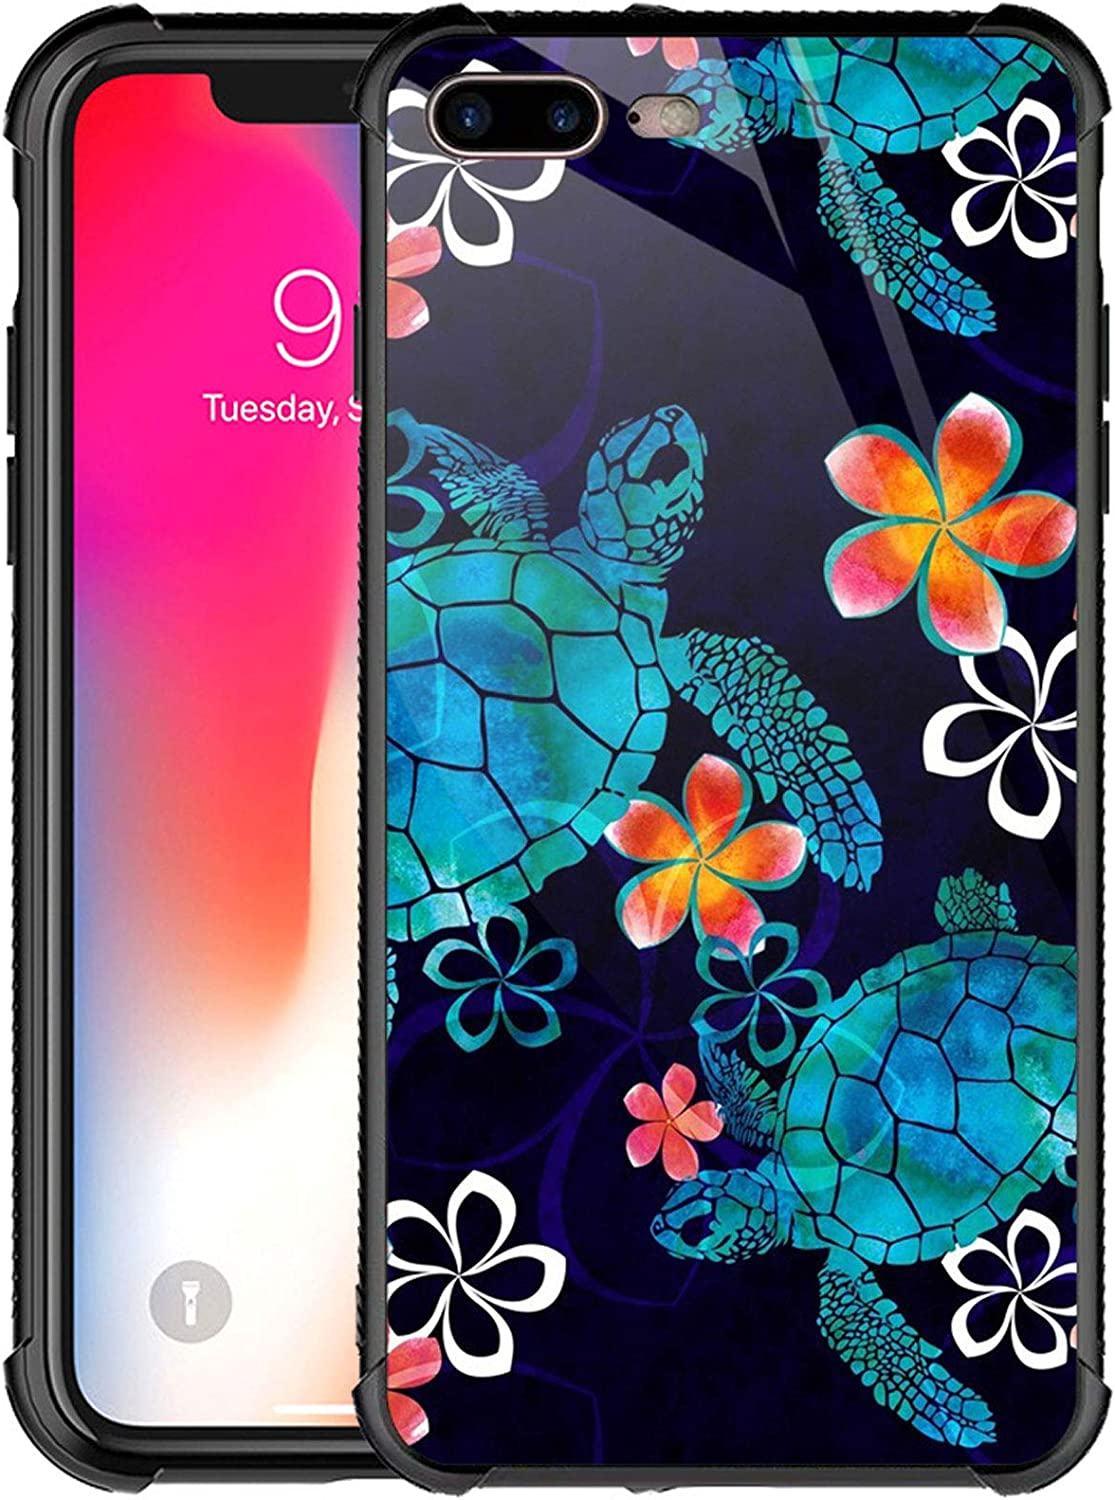 iPhone 8 Plus Case,Turtle and Flowers iPhone 7 Plus Cases for Girls Boys,Customesize Pattern Design Shockproof Anti-Scratch Hard PC Back Case for Apple iPhone 7/8 Plus